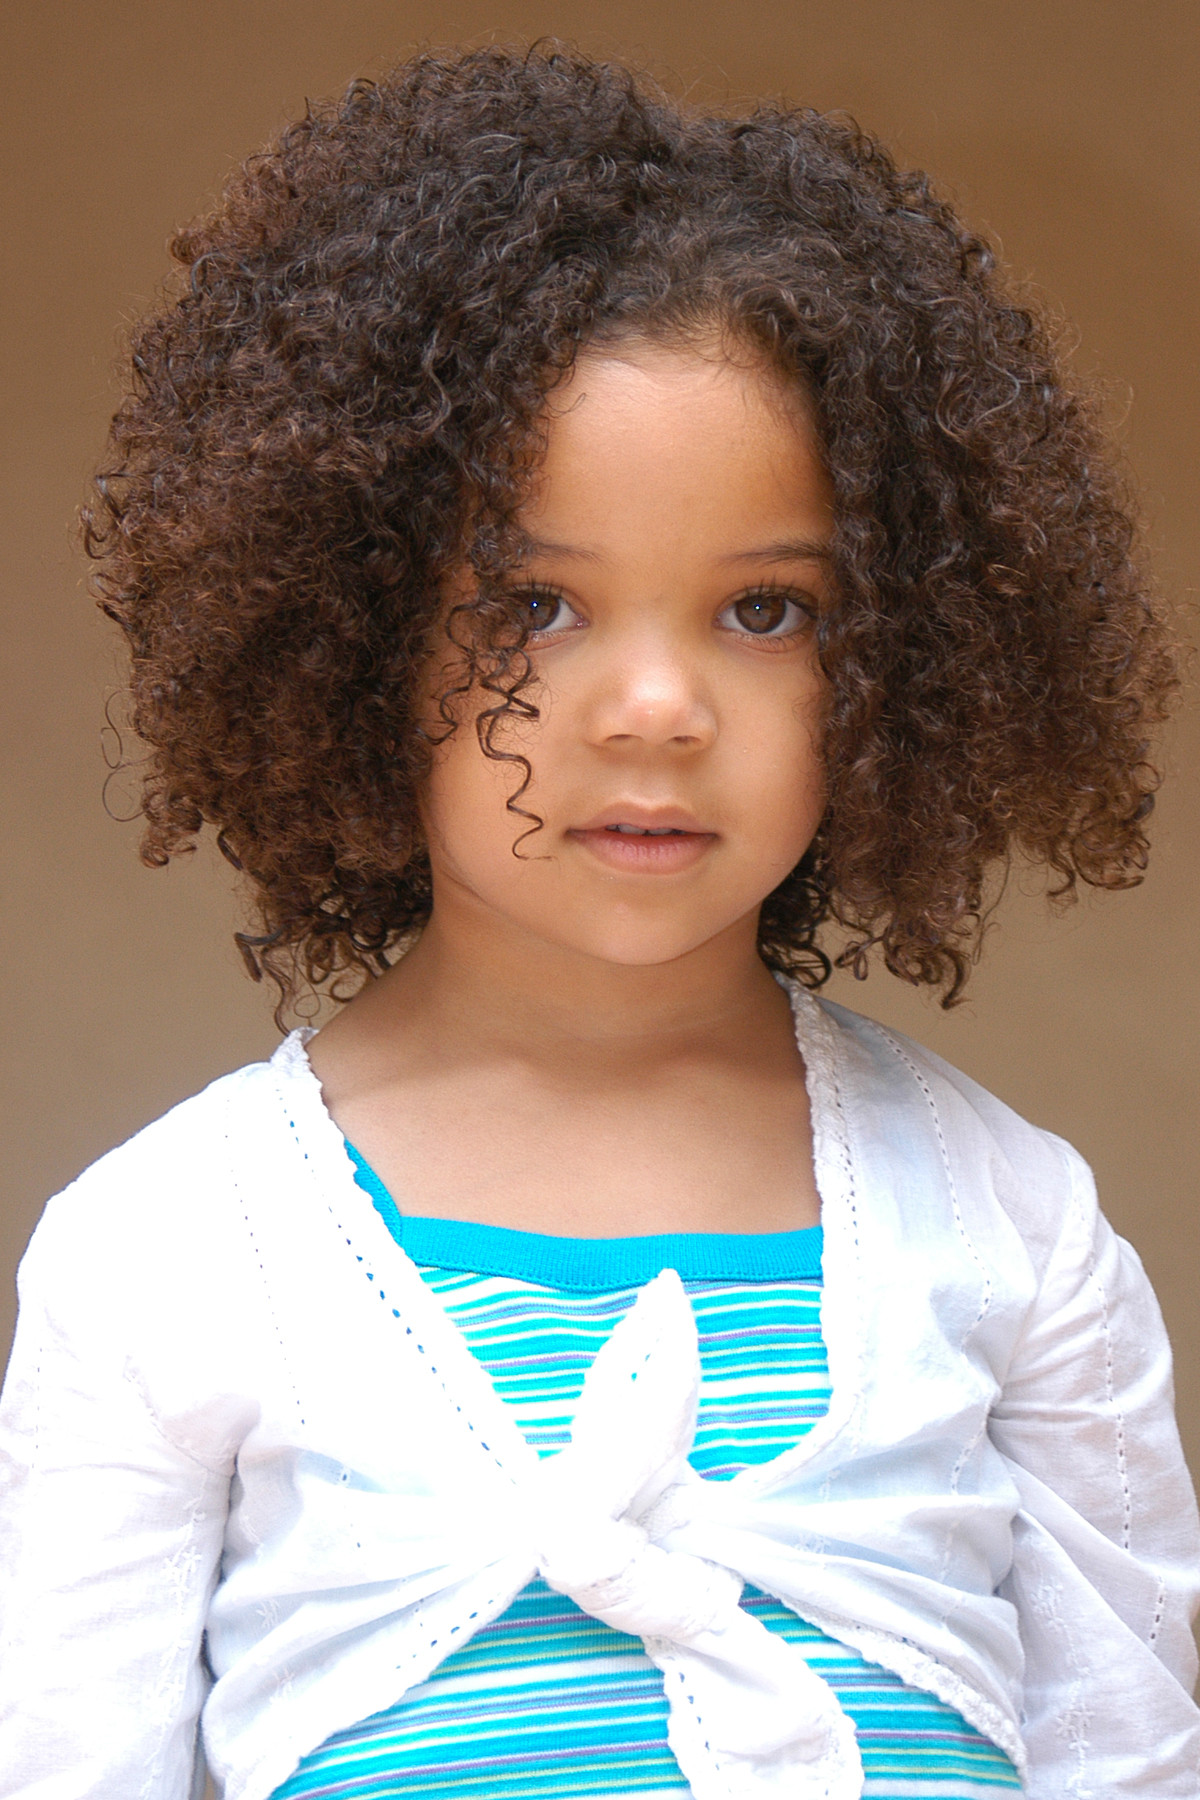 Best ideas about Cute Hairstyles For Mixed Girls . Save or Pin Different hair types Now.